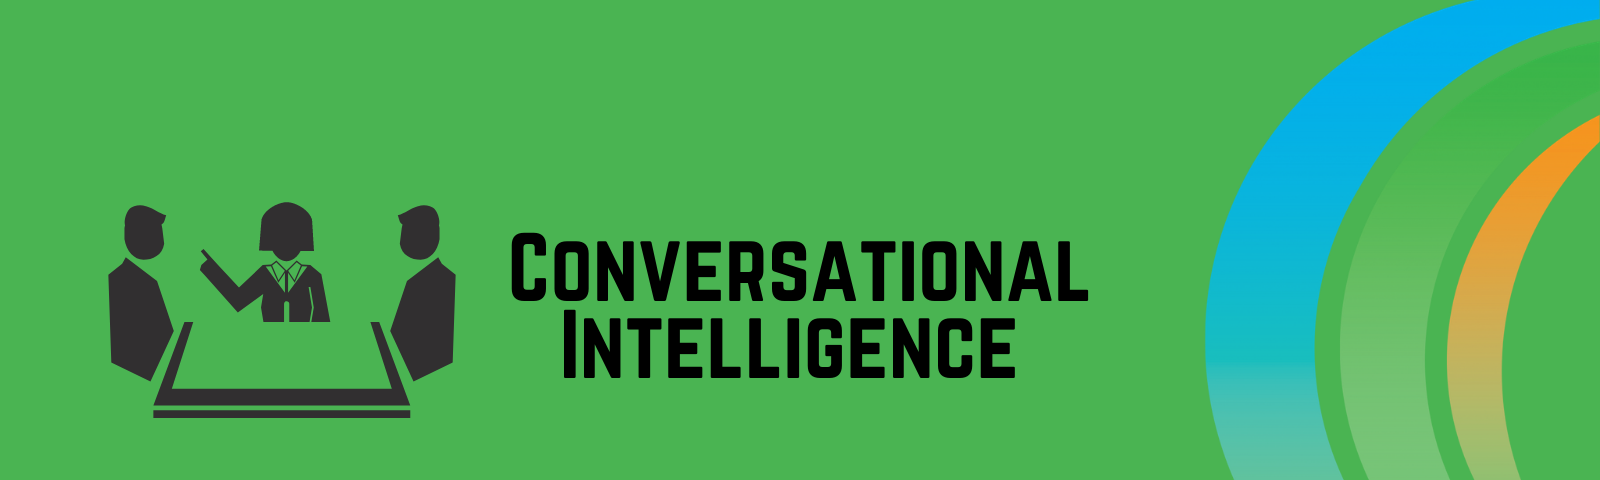 Conversational Intelligence: How to get the most out of meetings